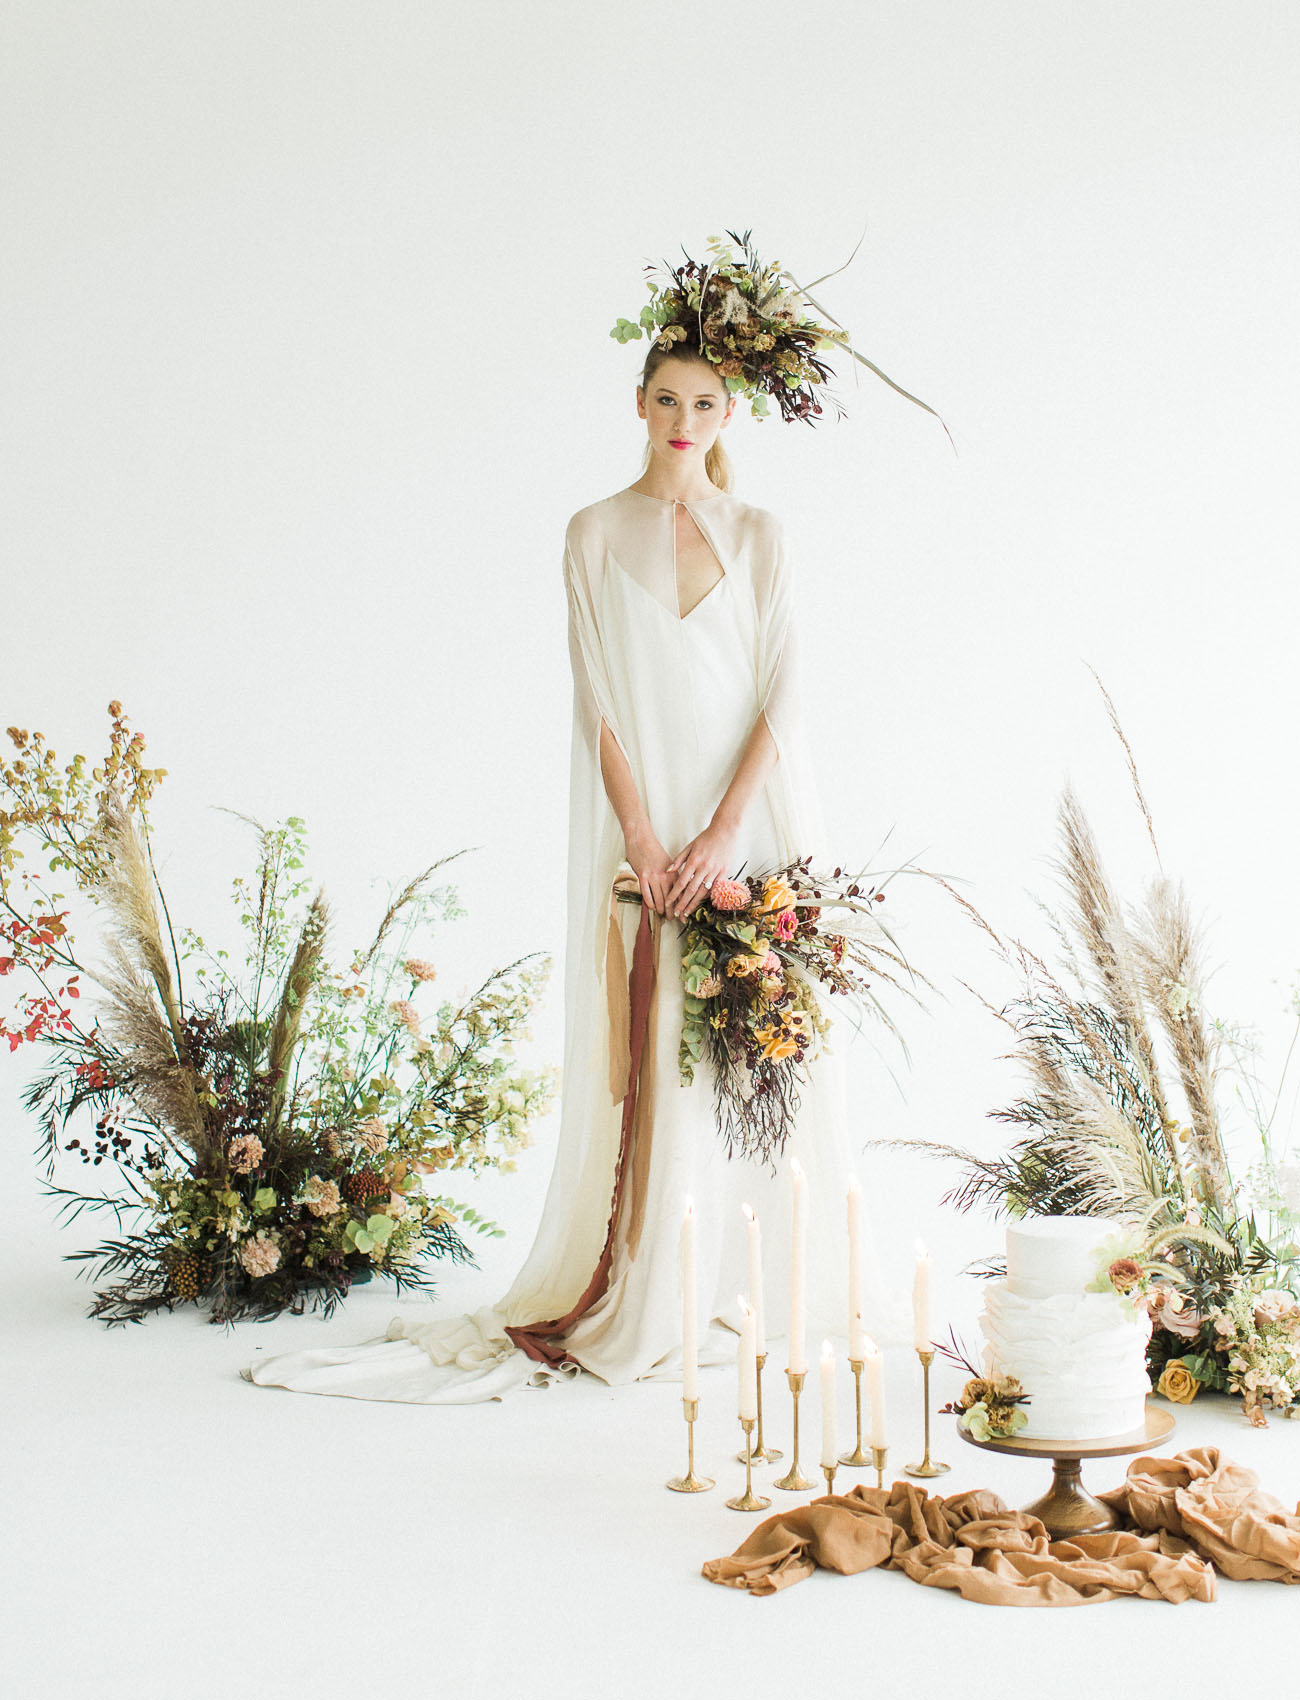 The third wedding gown was a modern V neckline one with an ethereal cape over it for an airy feel